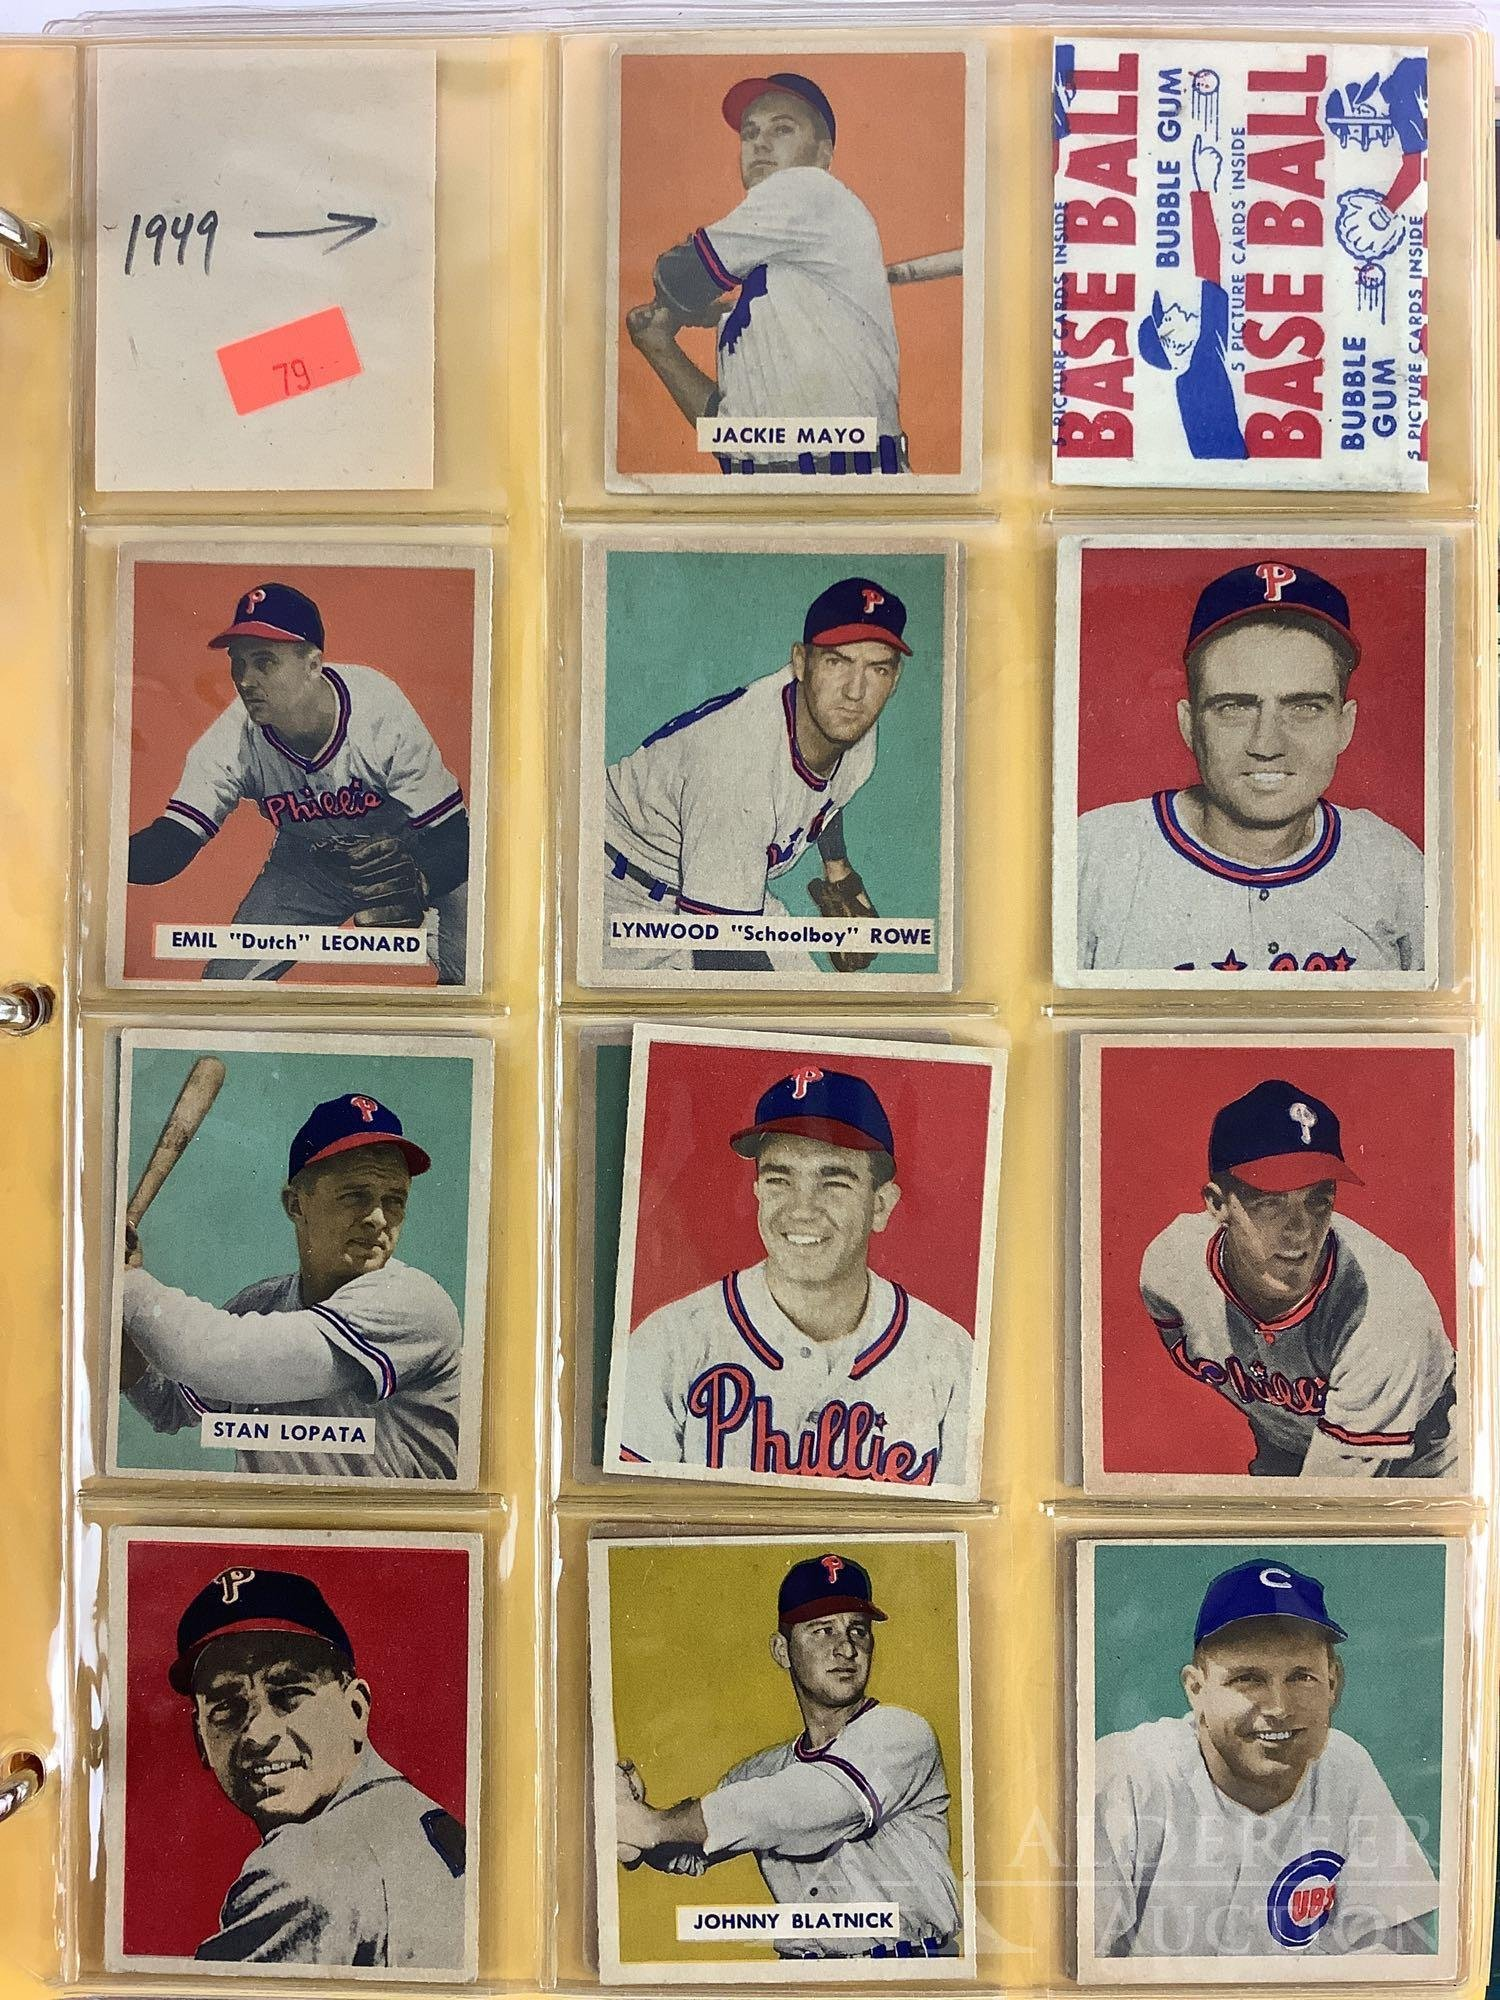 1949 Bowman baseball cards and wrapper